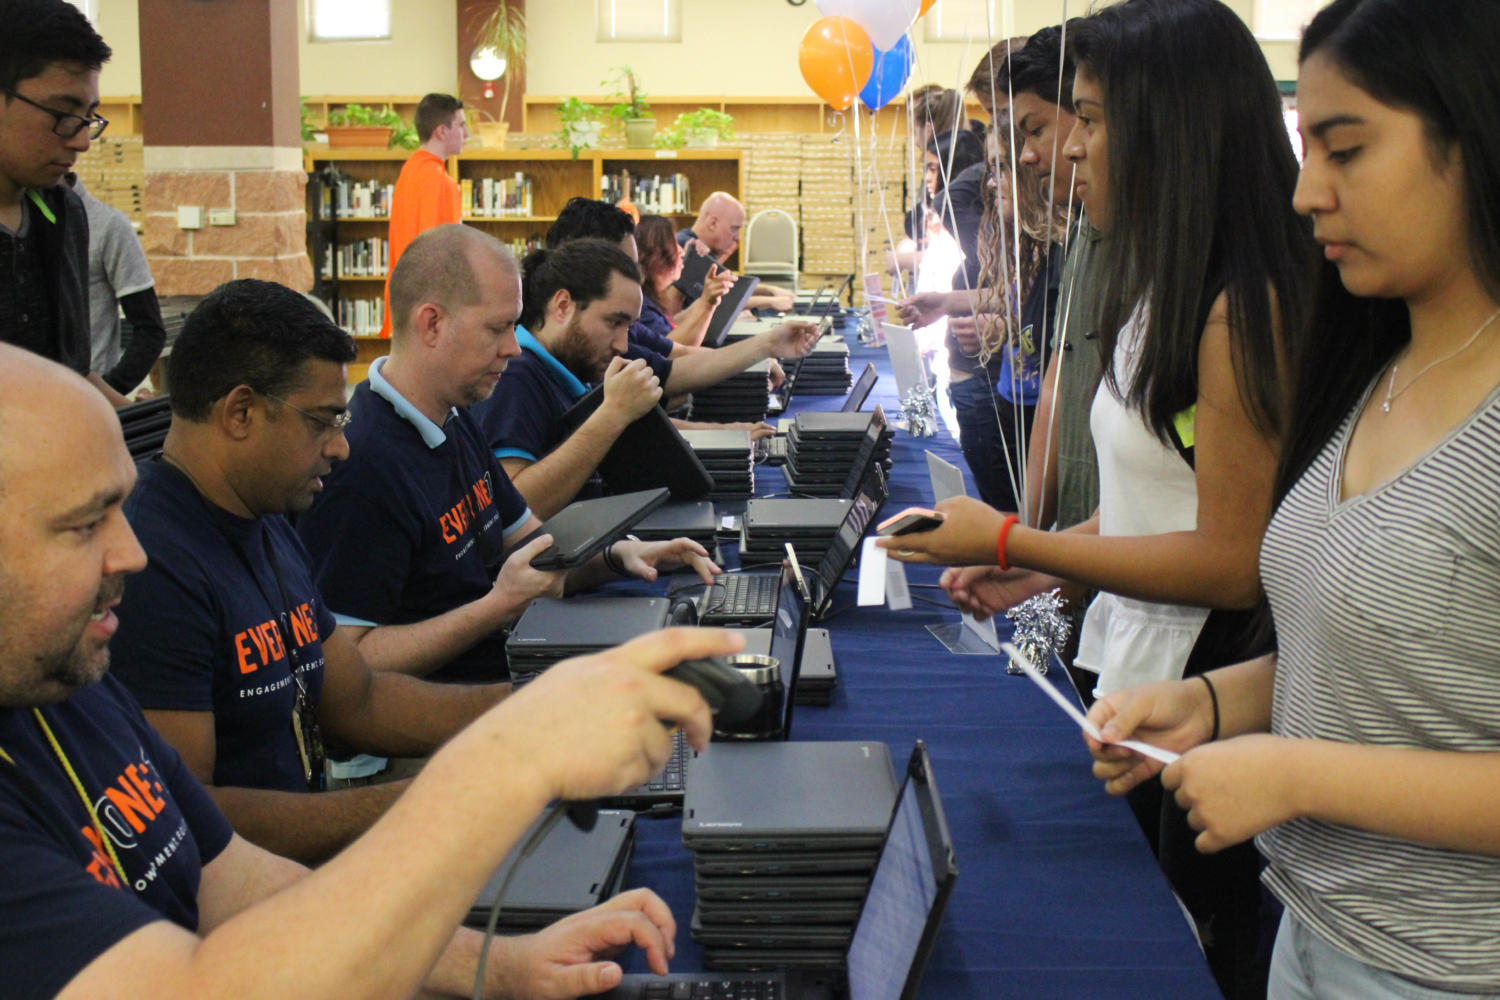 Austin ISD tech support staff and volunteers help distribute laptops to Akins students on Aug. 29 in the library. The initiative provided every student with a Chromebook that they will keep until the end of their high school career.